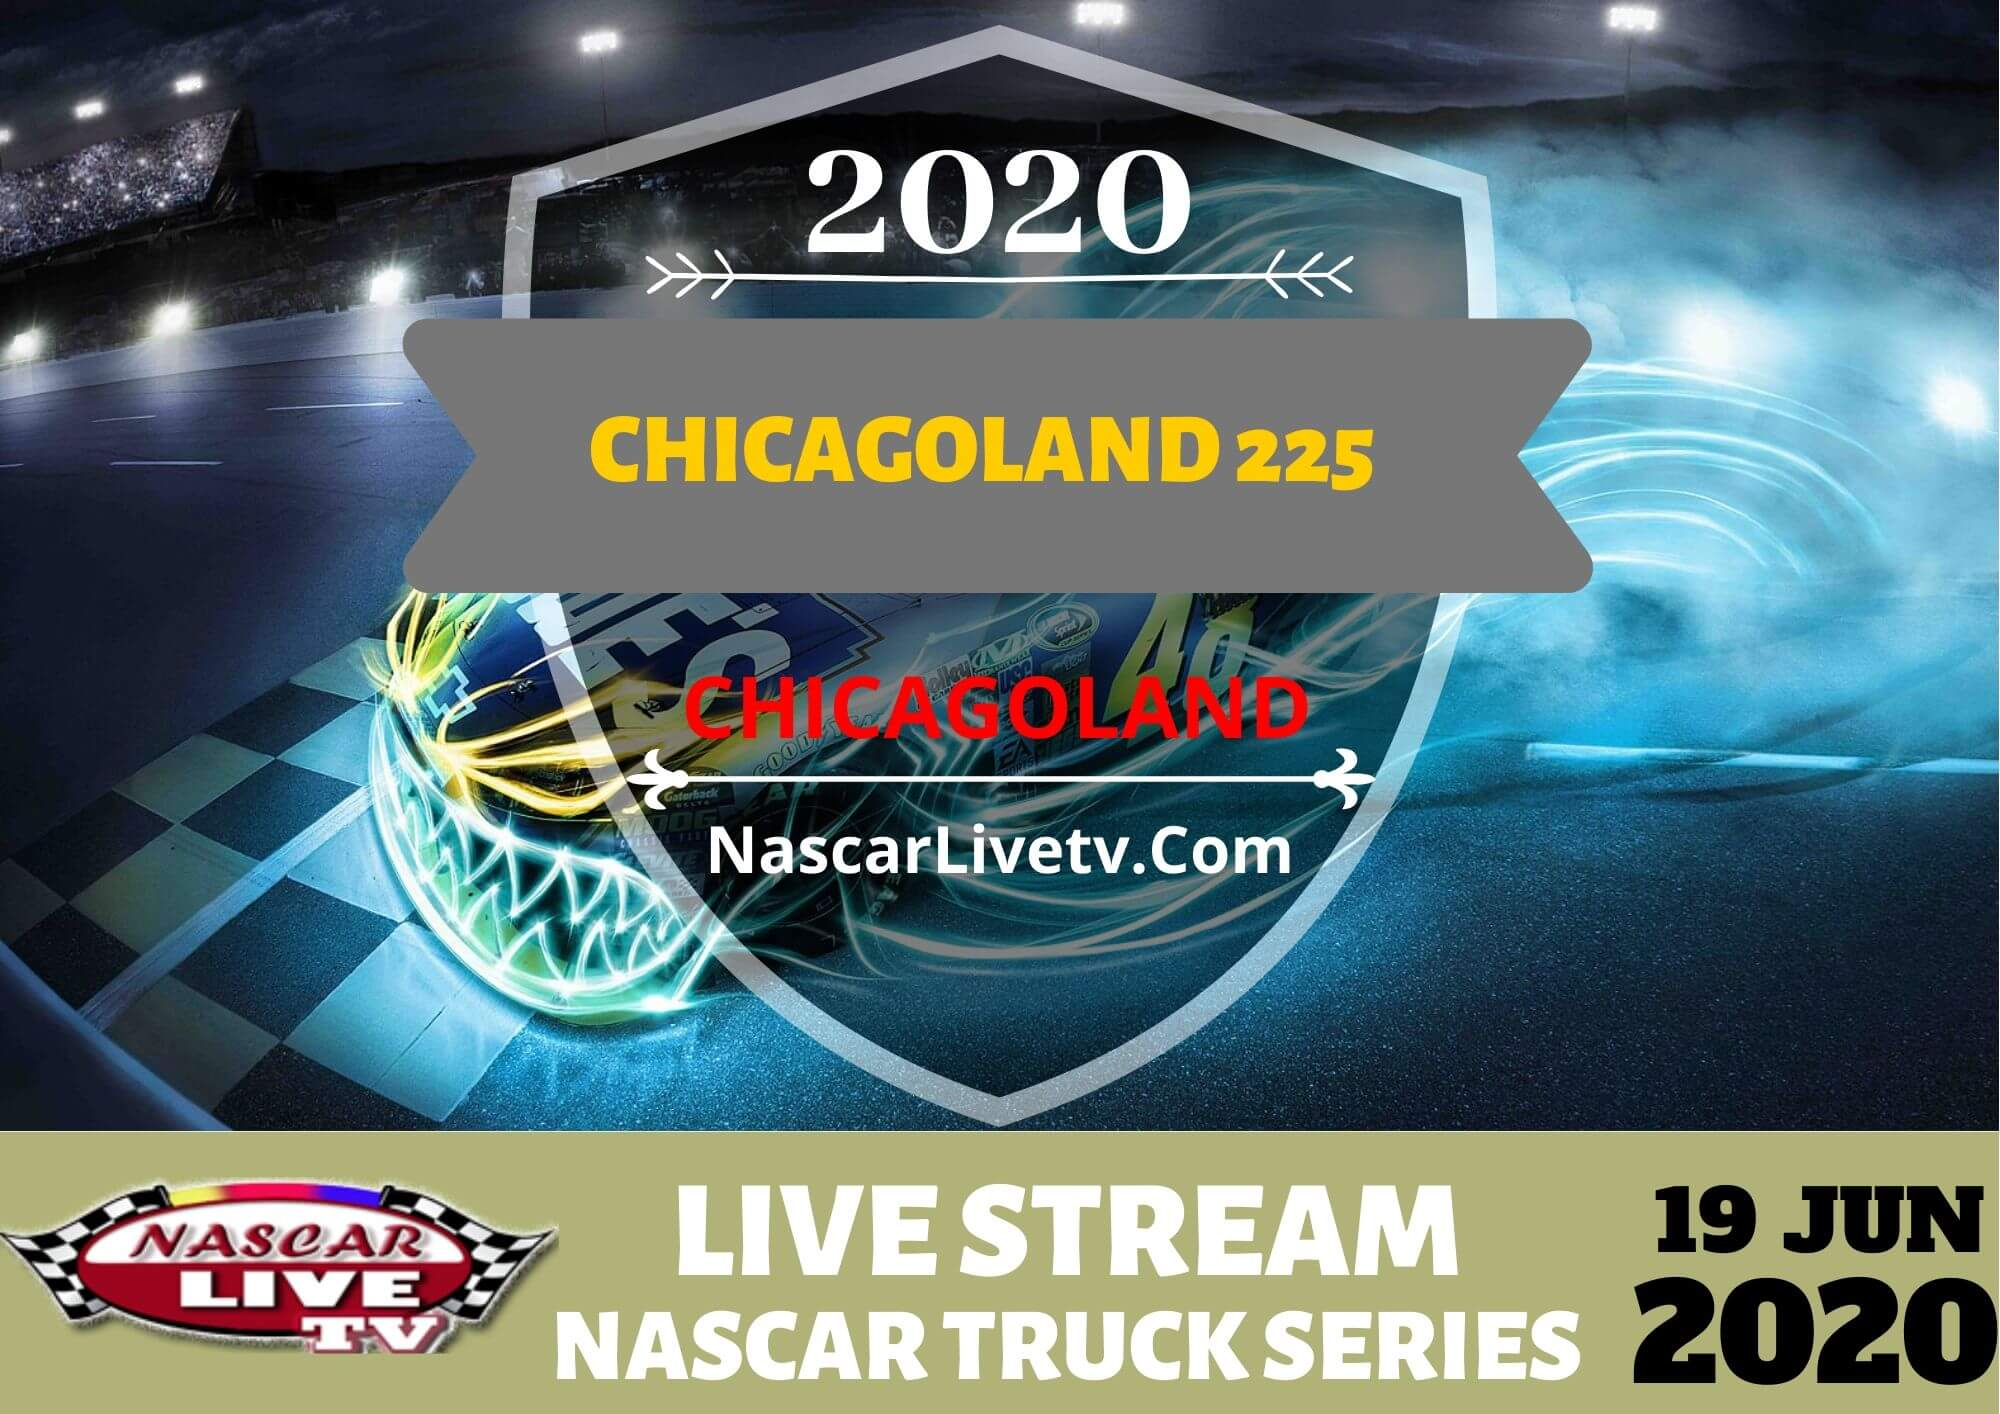 camping-world-225-nascar-truck-live-stream